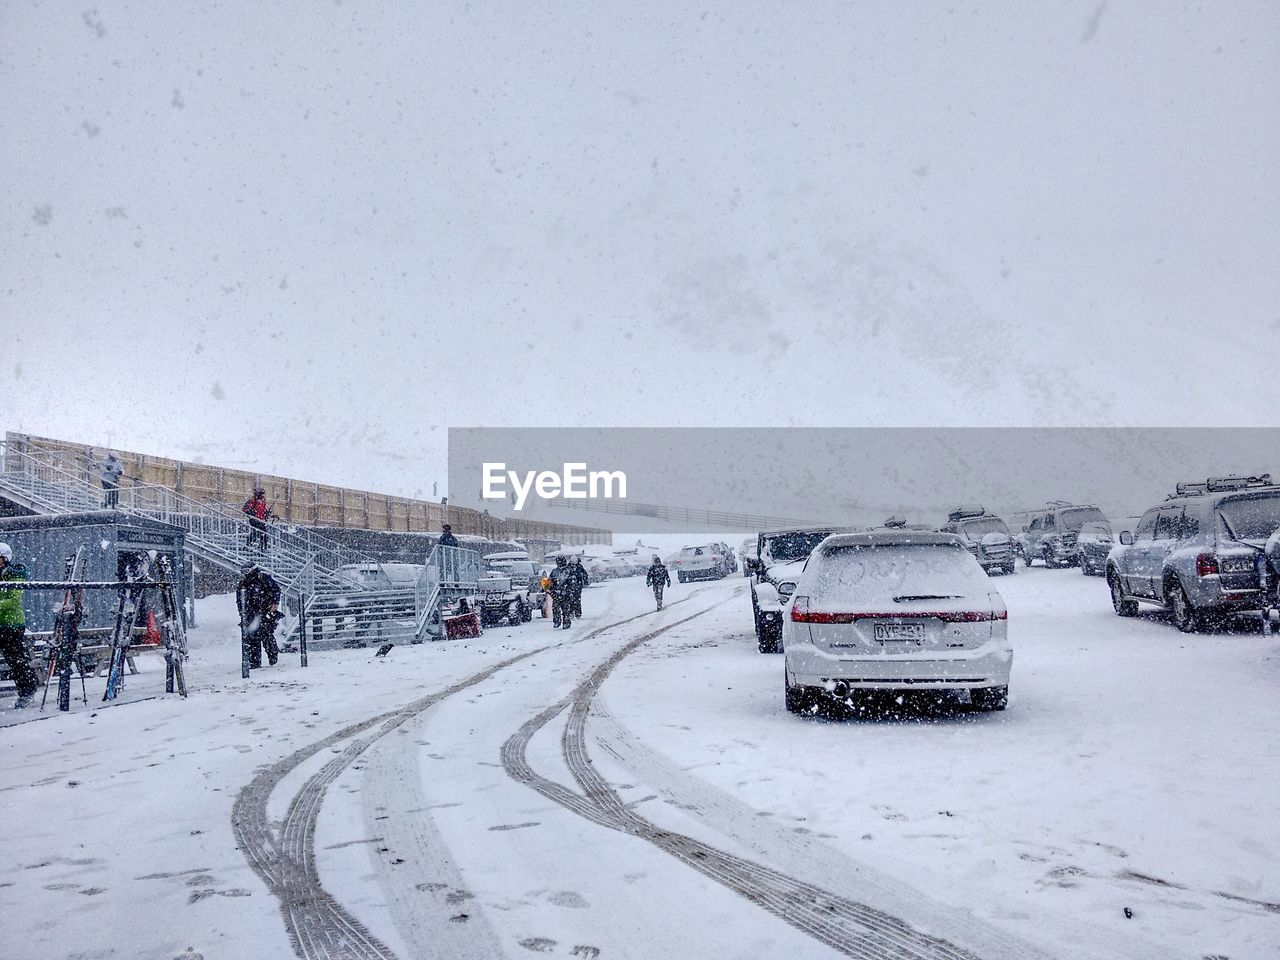 cold temperature, snow, winter, transportation, land vehicle, car, motor vehicle, mode of transportation, road, nature, day, city, sky, architecture, covering, street, white color, snowing, built structure, outdoors, extreme weather, blizzard